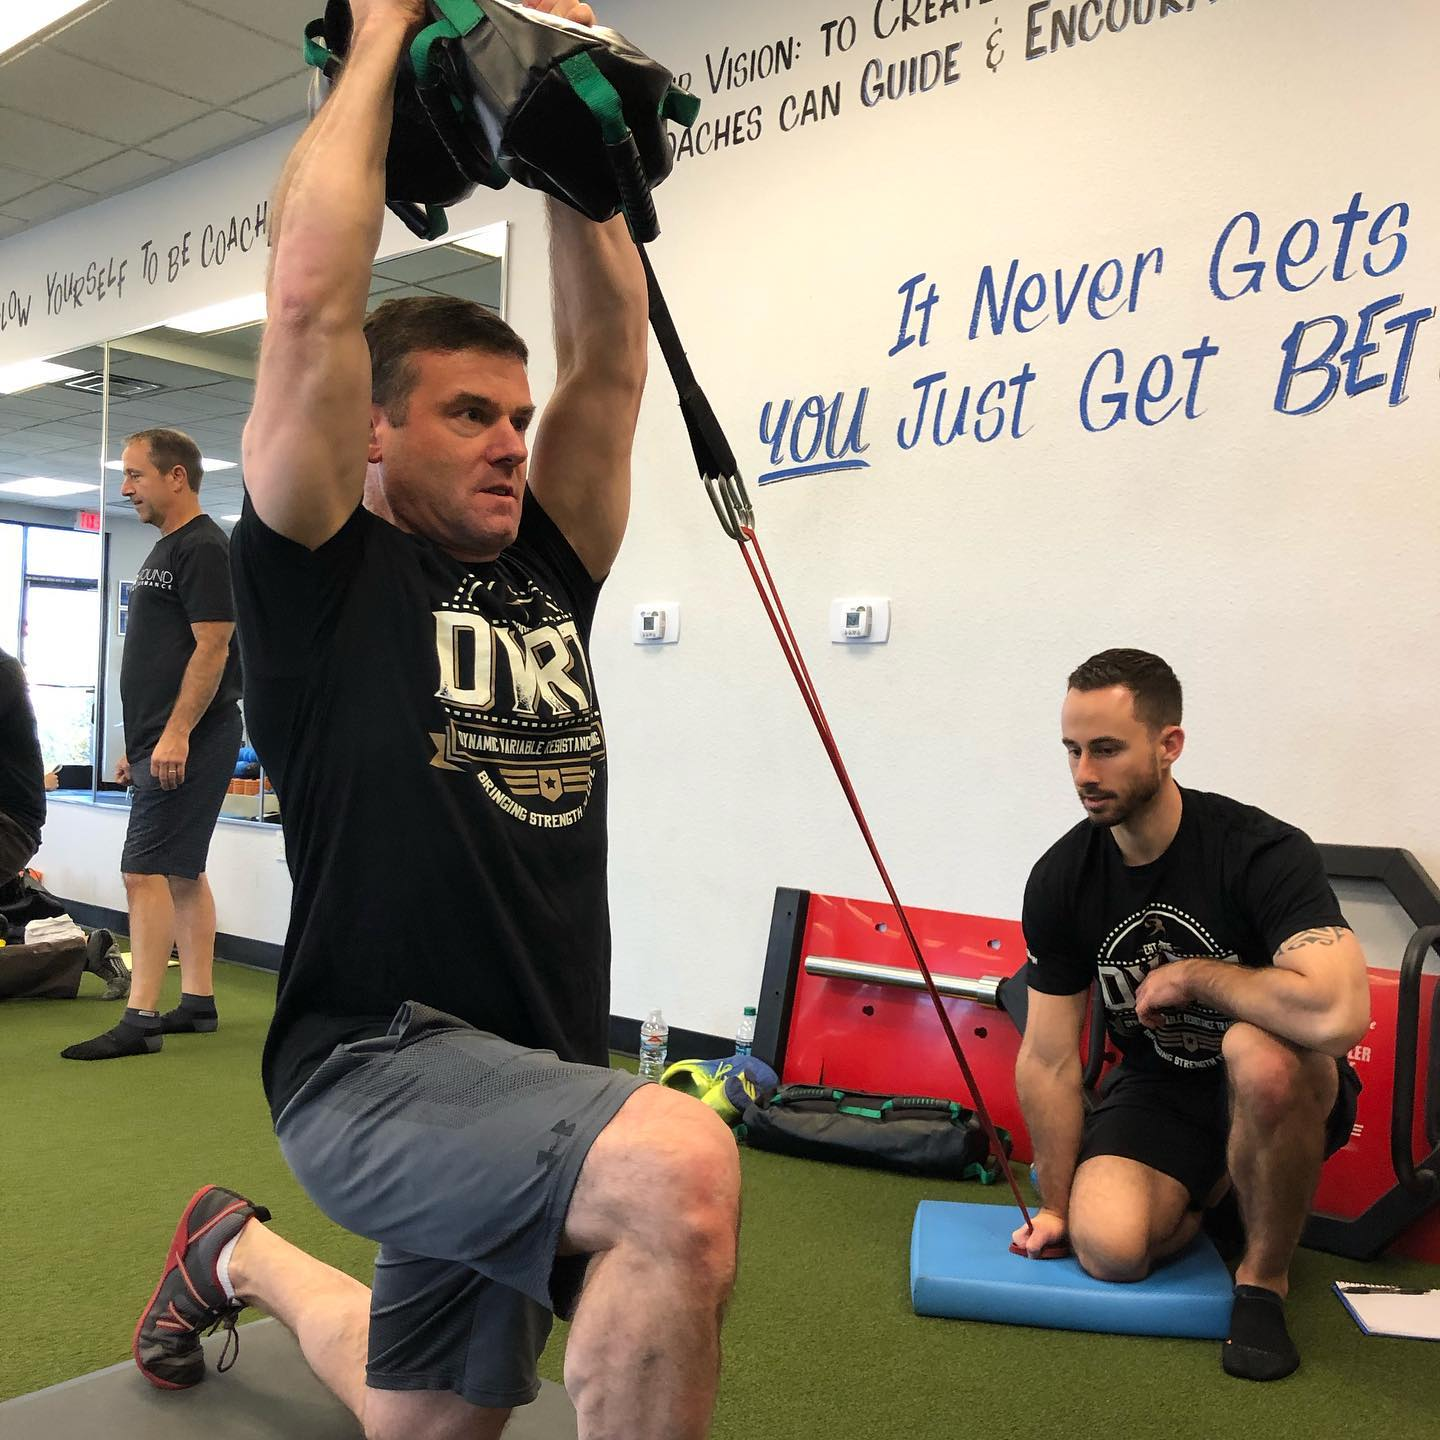 DVRT Ultimate Sandbag Training